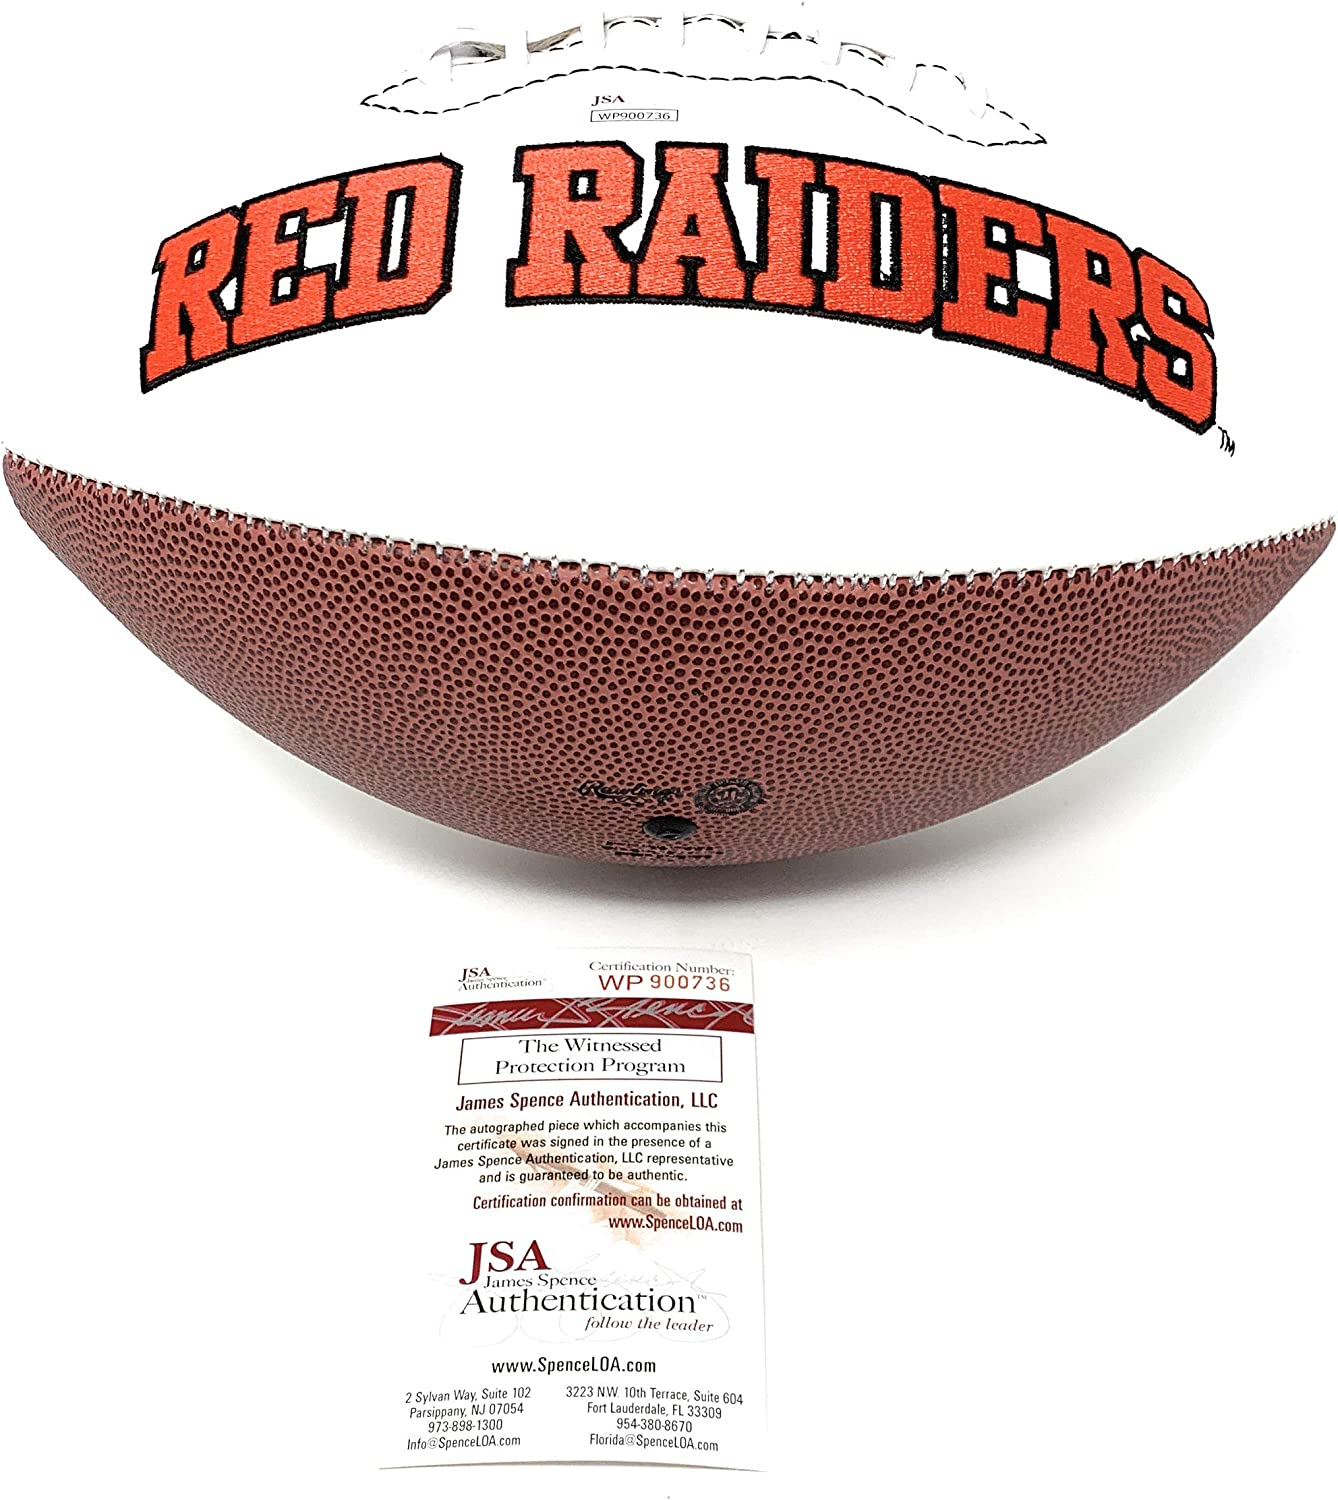 Patrick Mahomes Kansas City Chiefs Signed Autograph Embroidered Logo Football JSA Witnesesd Certified